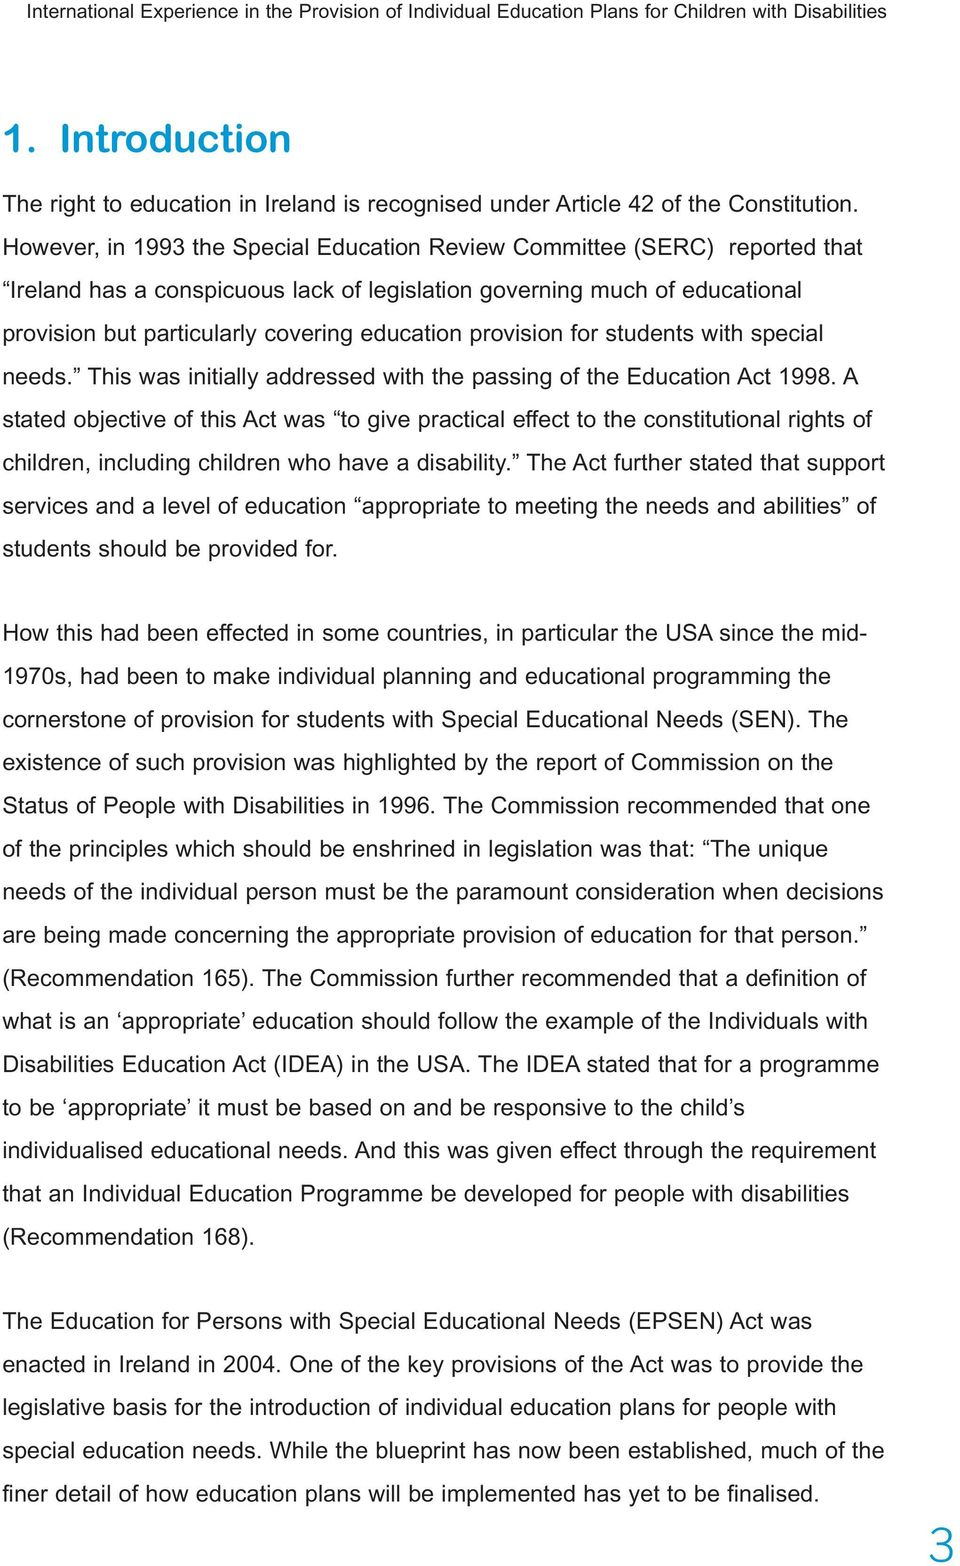 However, in 1993 the Special Education Review Committee (SERC) reported that Ireland has a conspicuous lack of legislation governing much of educational provision but particularly covering education